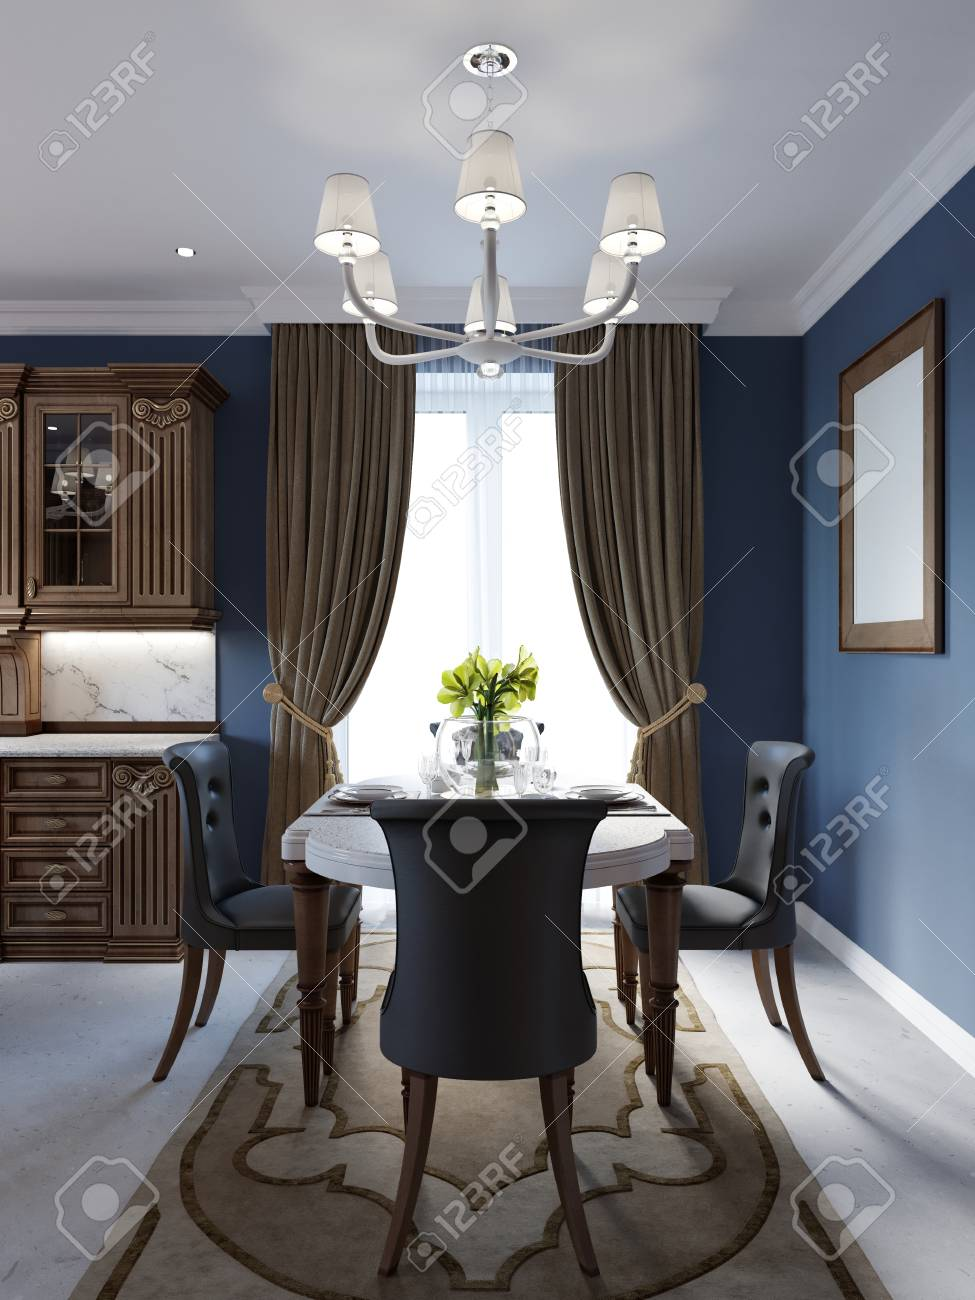 Decoration and furniture of classical dining room with table. 3d rendering - 113850326